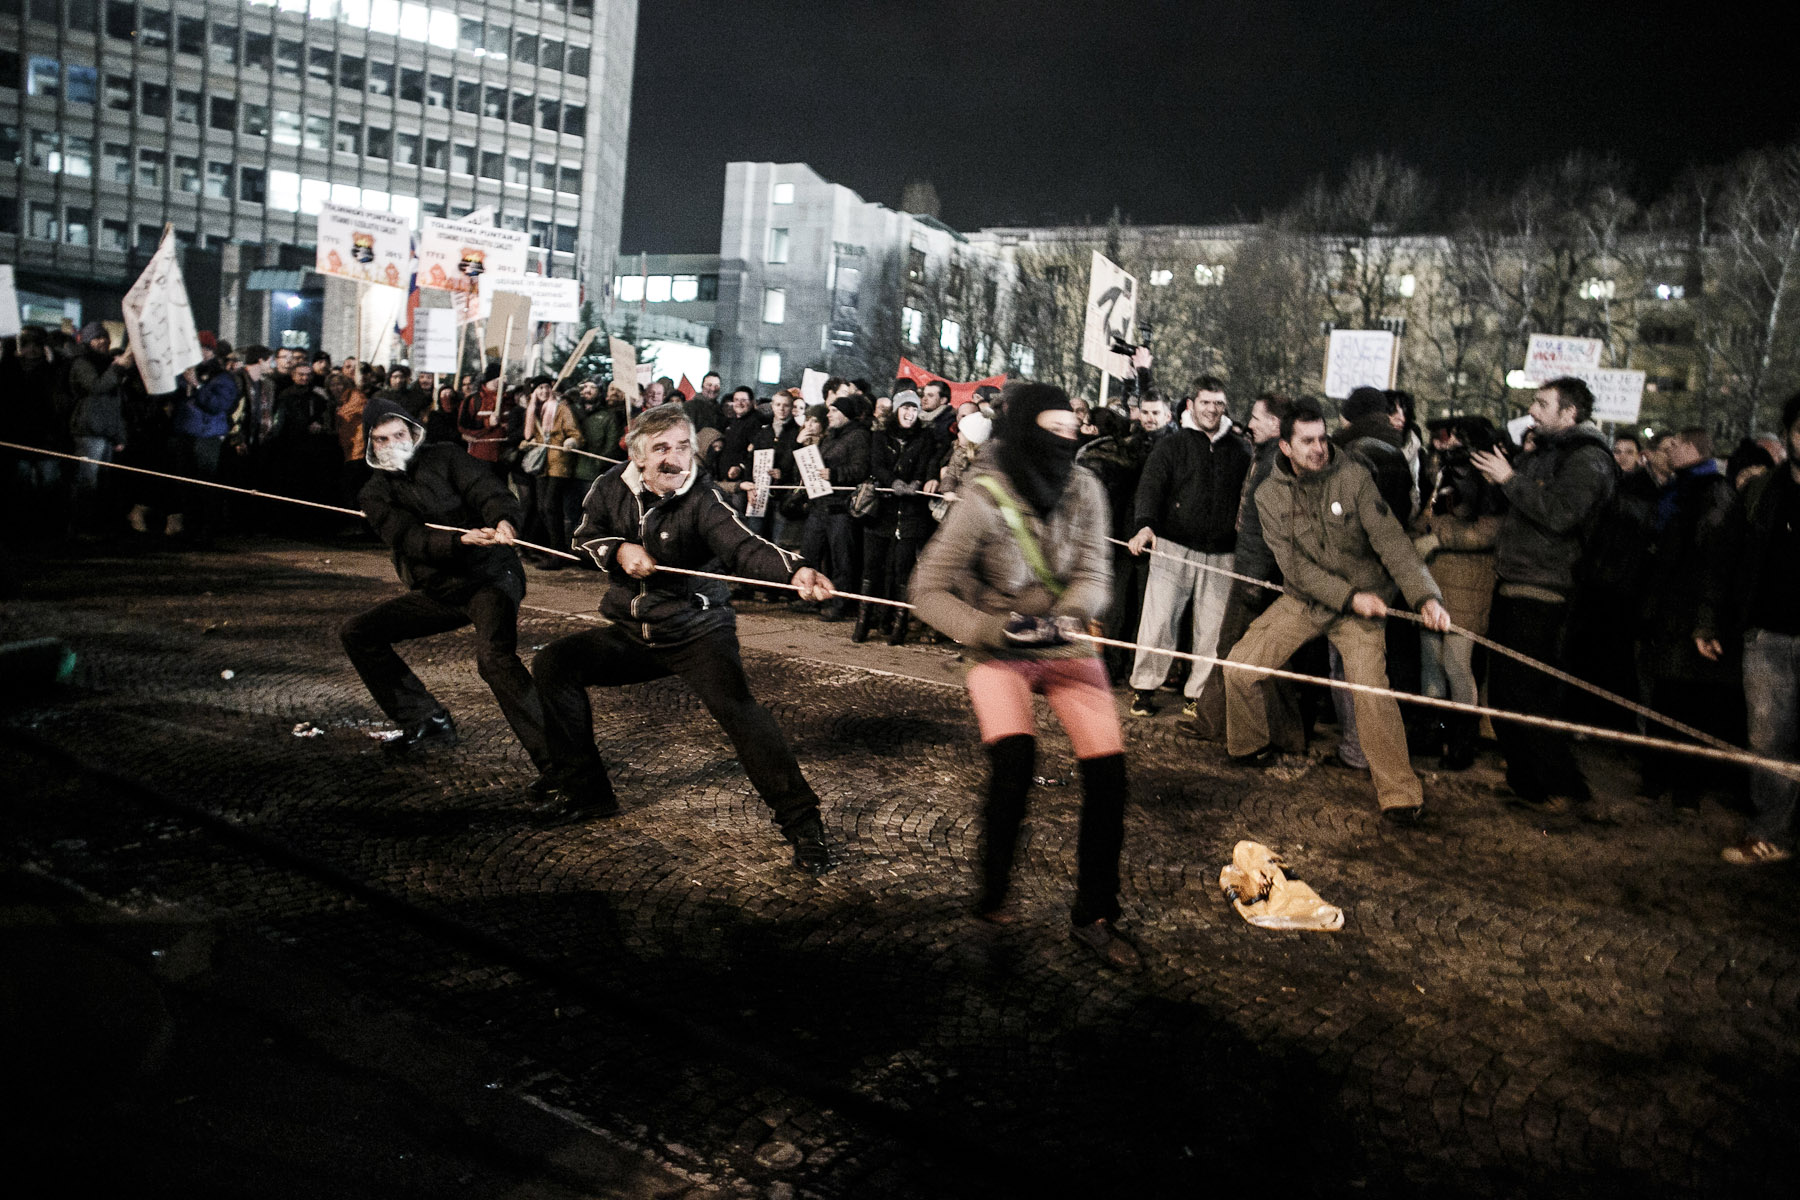 Protesters try to tear down the security fences in the Republic Square during the second countrywide uprising in Ljubljana, Slovenia, on January 11, 2013.